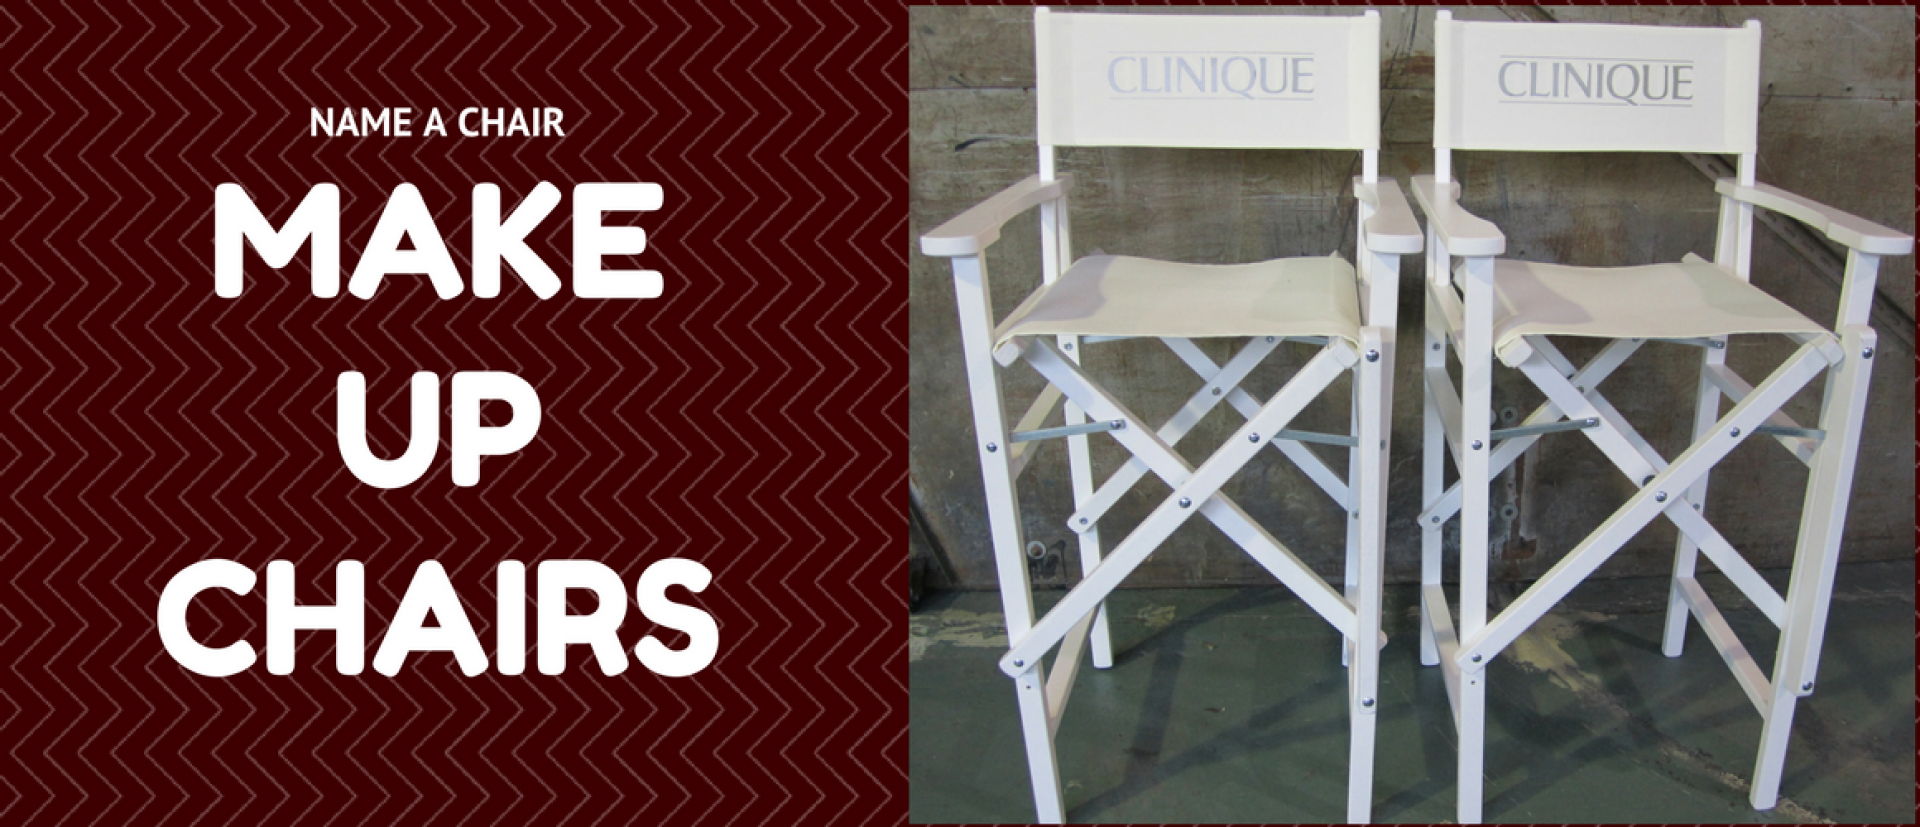 Make Up Chairs